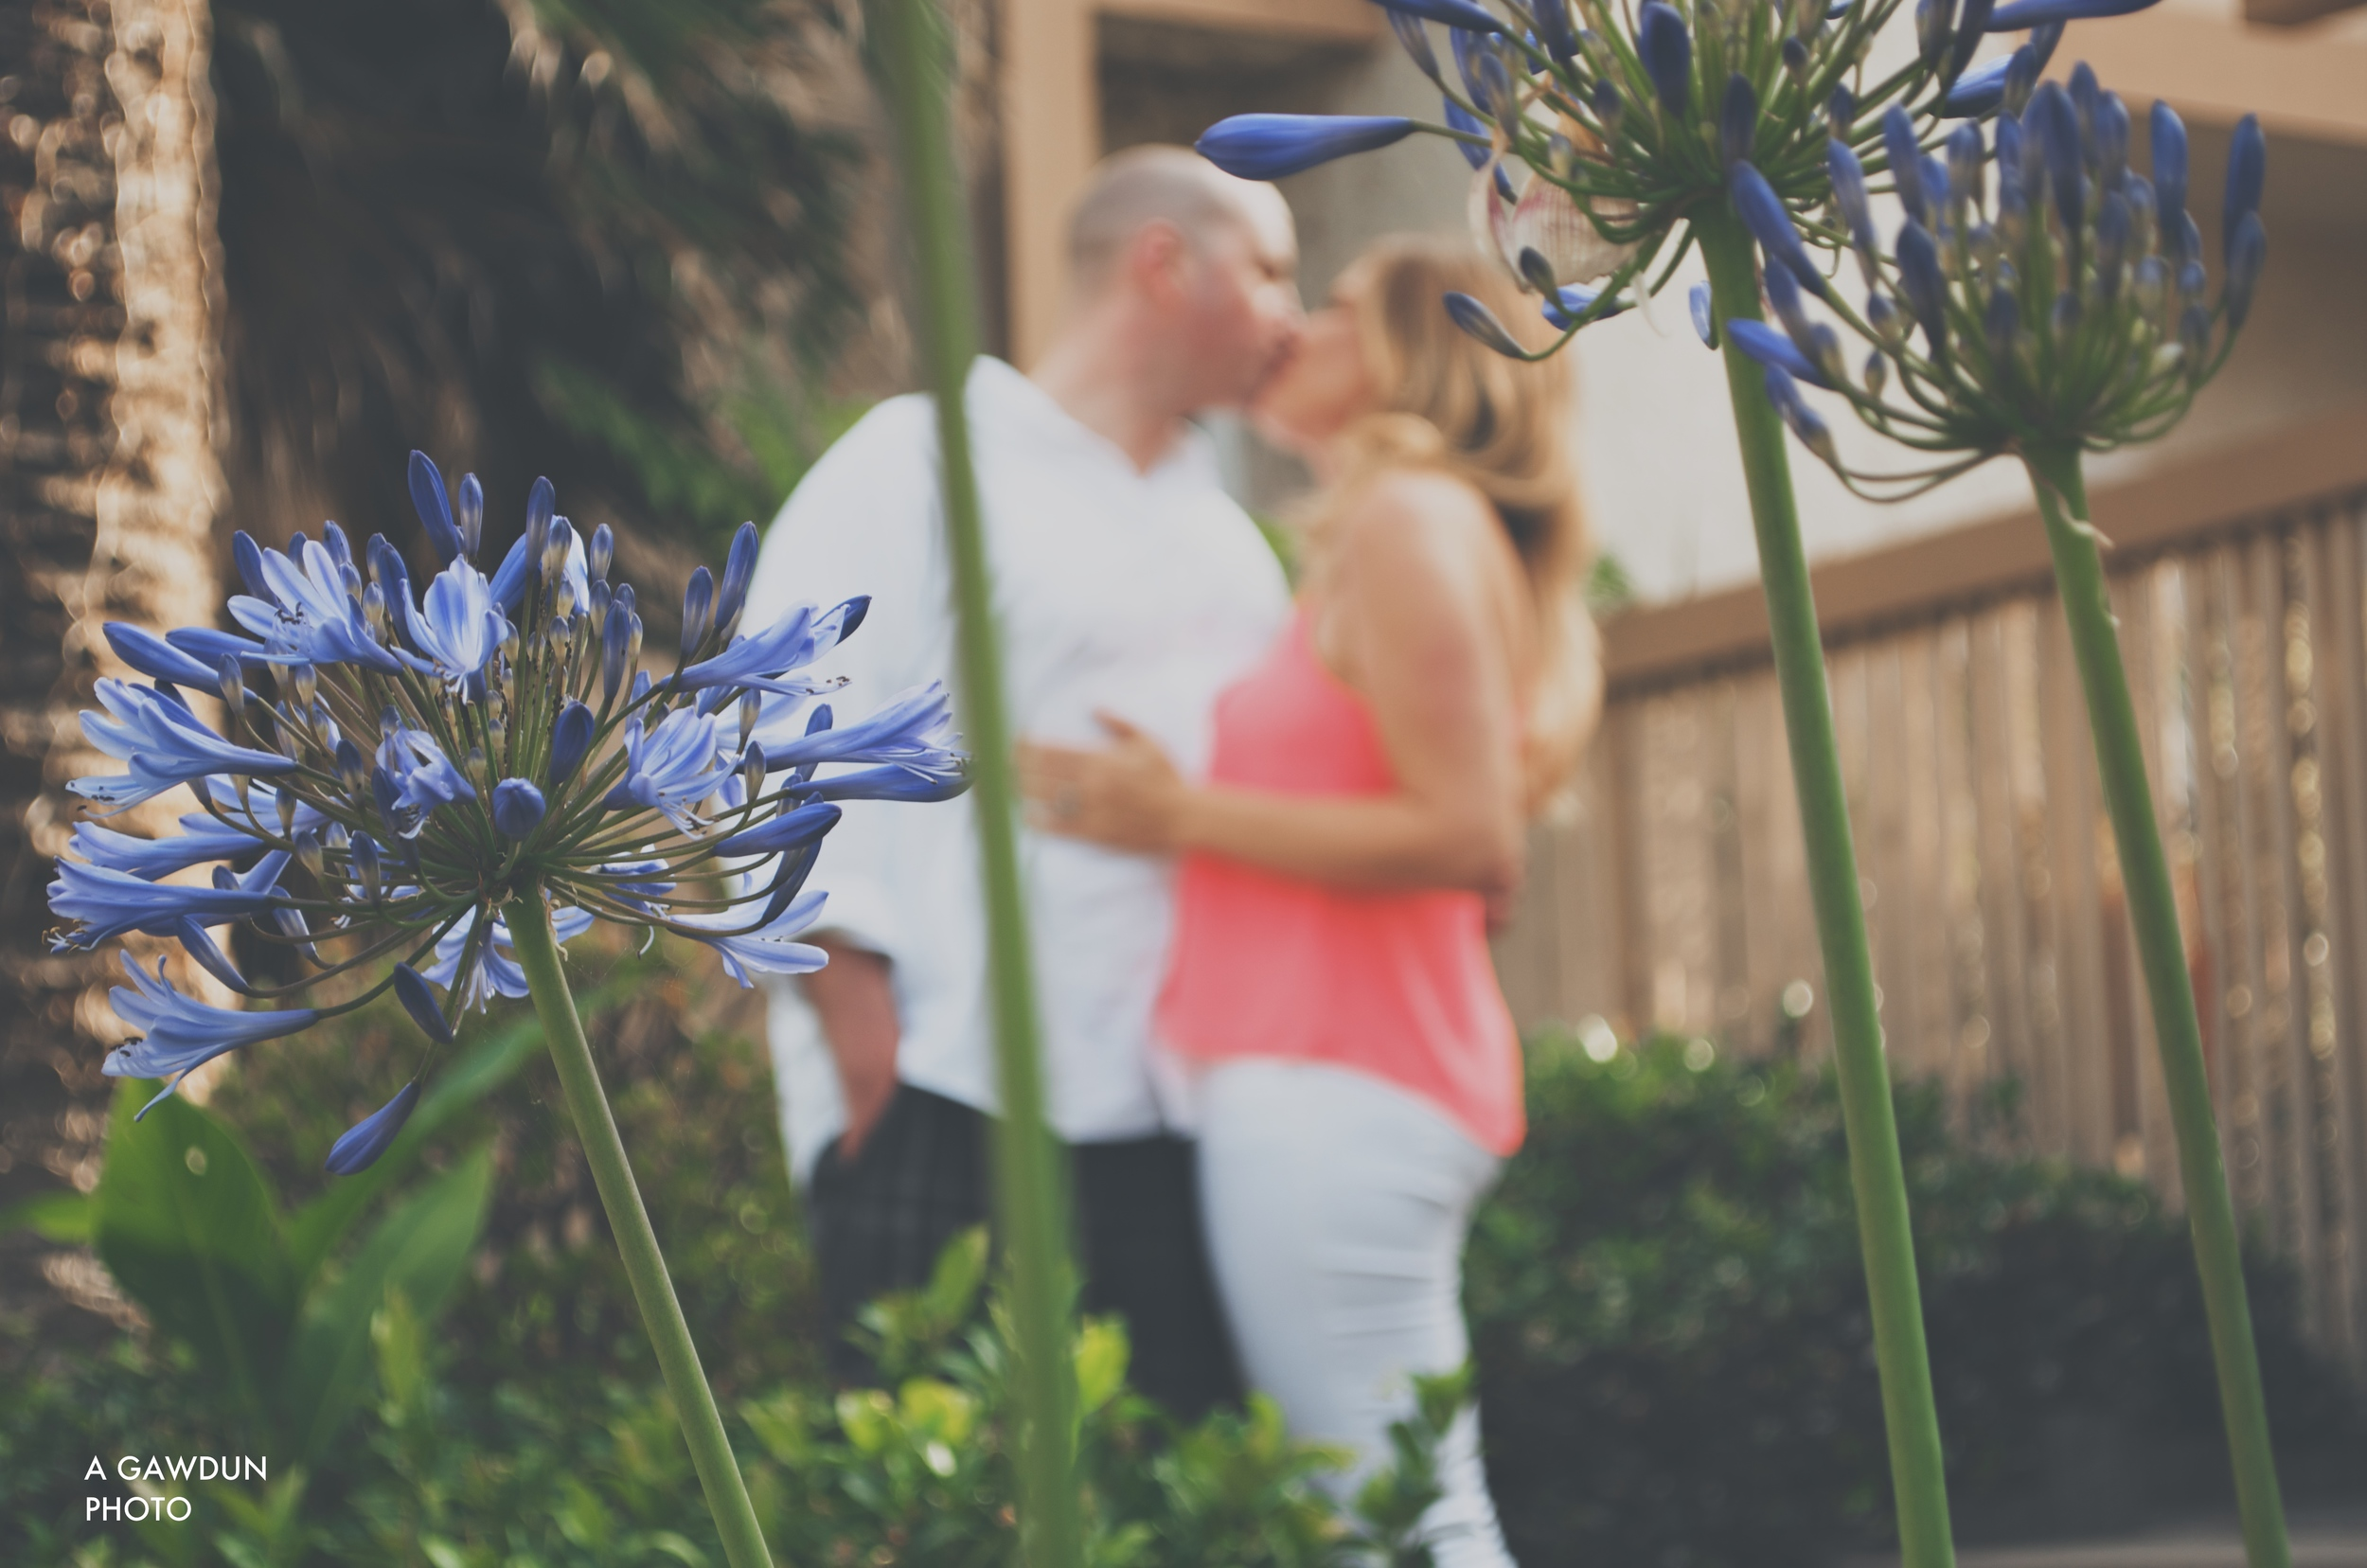 More of this love found at:   www.agawdunphoto.com/blog  